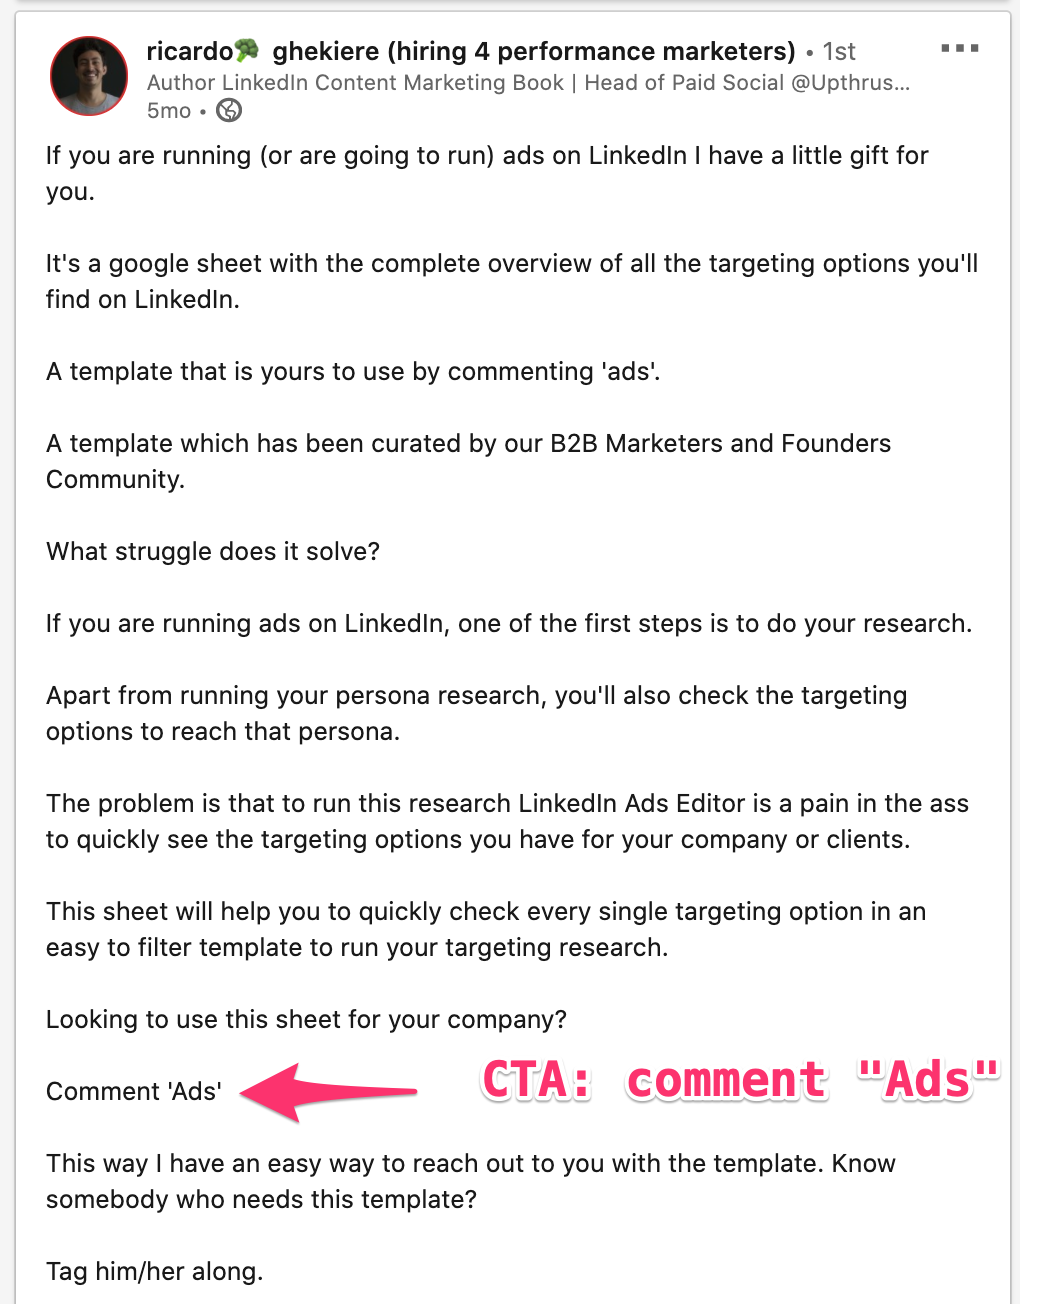 Example of a LinkedIn post that asks for engagement in return for content.